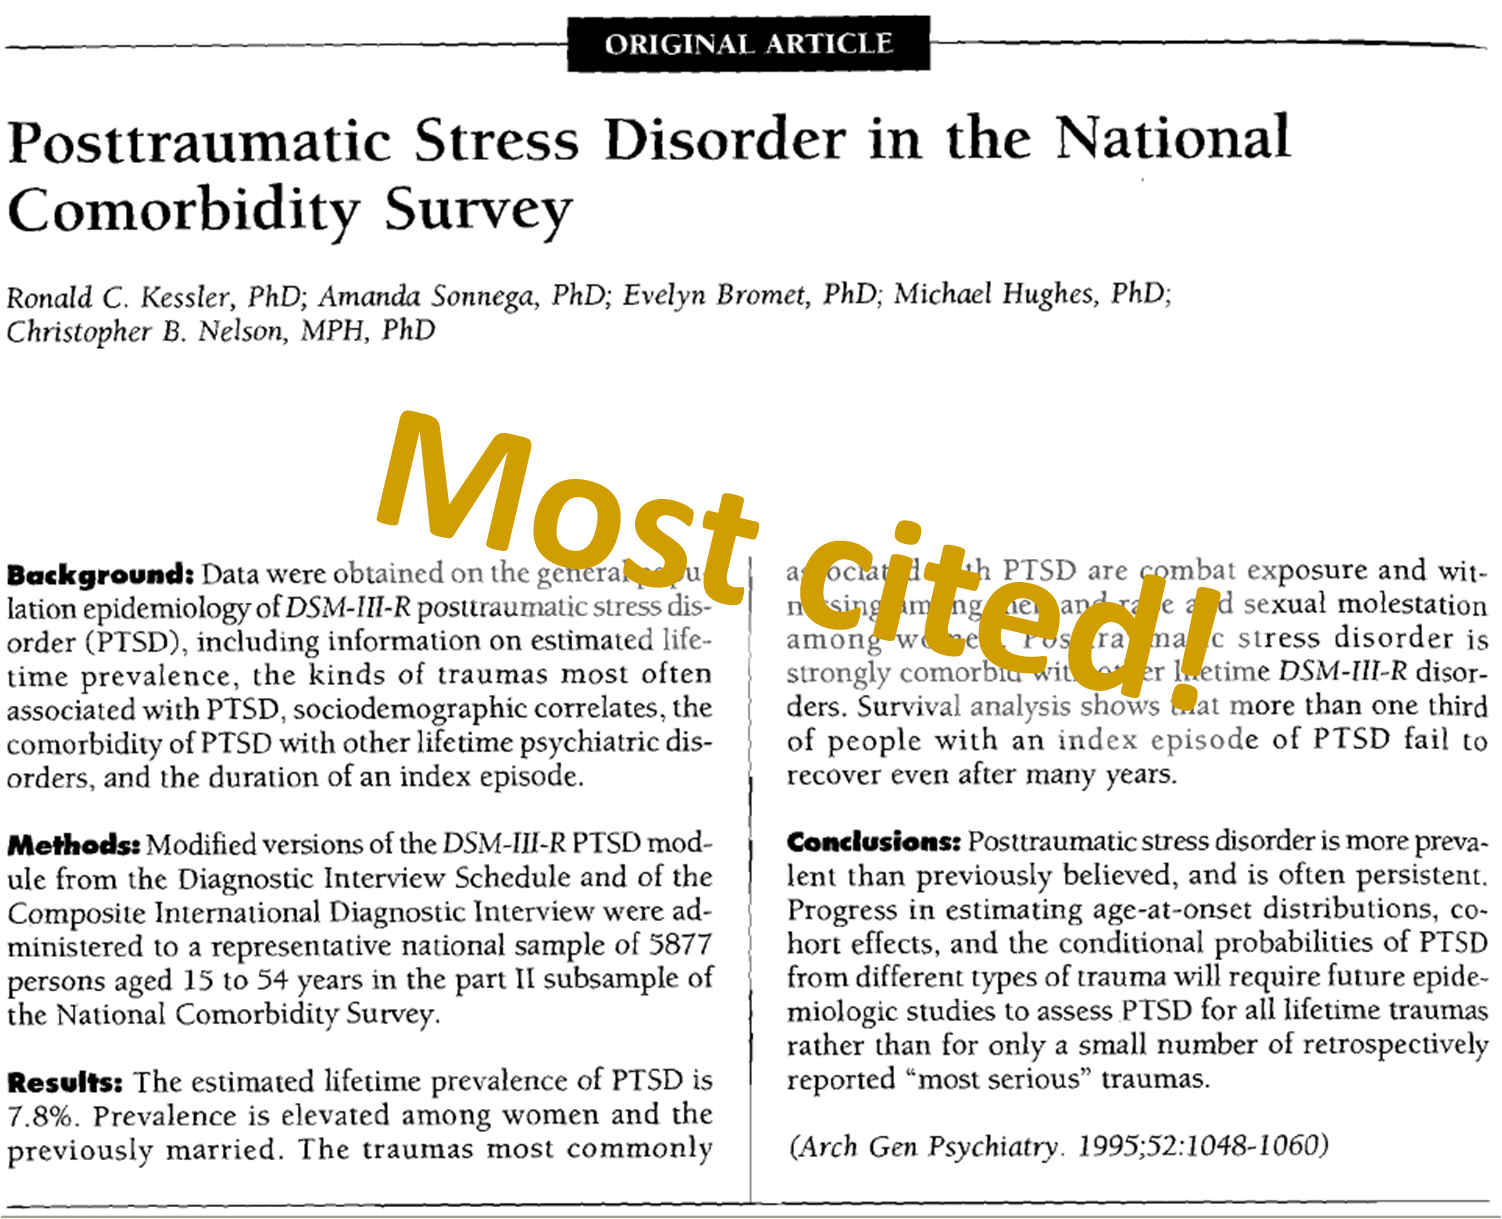 001 Ptsd Research Paper Trauma Recovery Most Cited Amazing Topics Ideas Conclusion Full